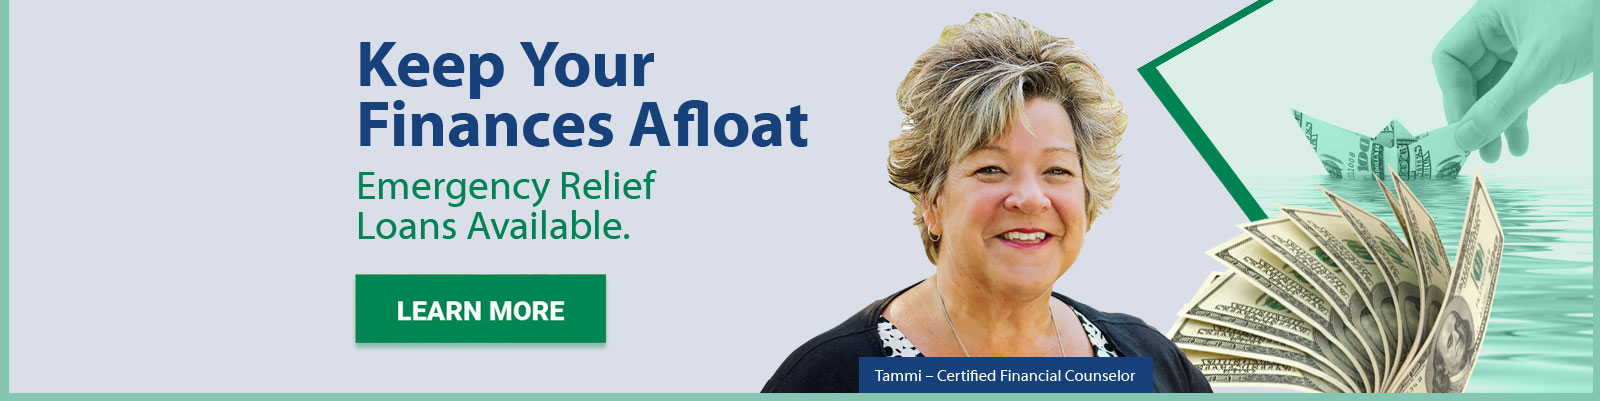 Emergency Relief Loans with Tammi Certified Financial Counselor